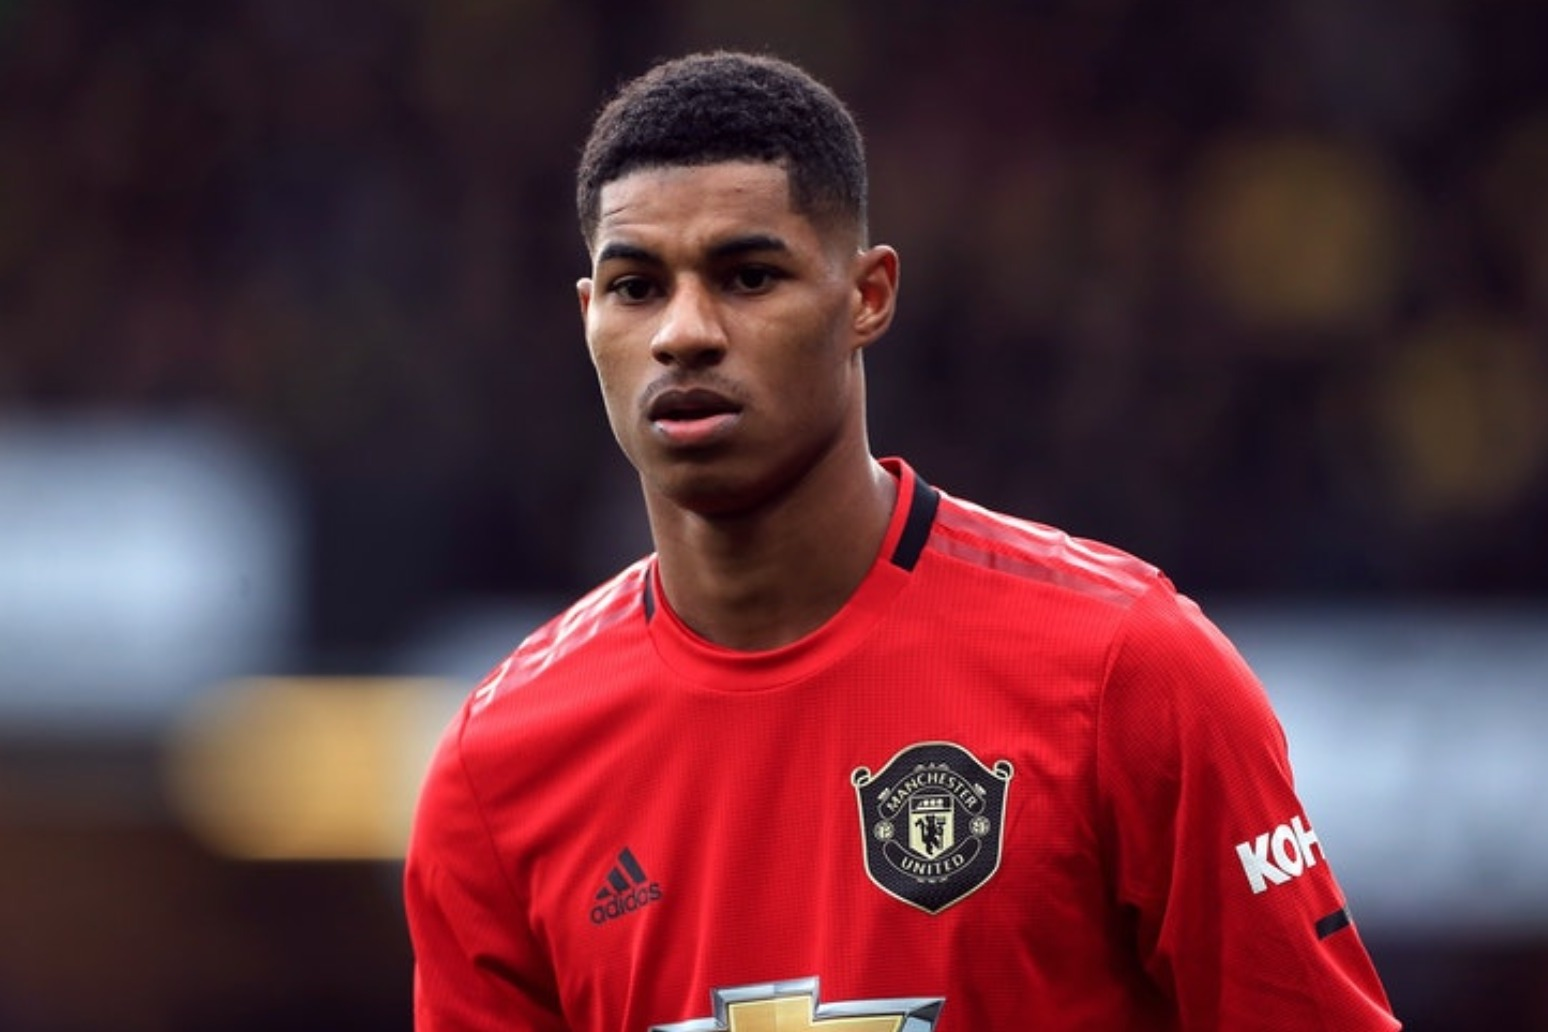 Marcus Rashford to receive honorary doctorate for free school meals campaign